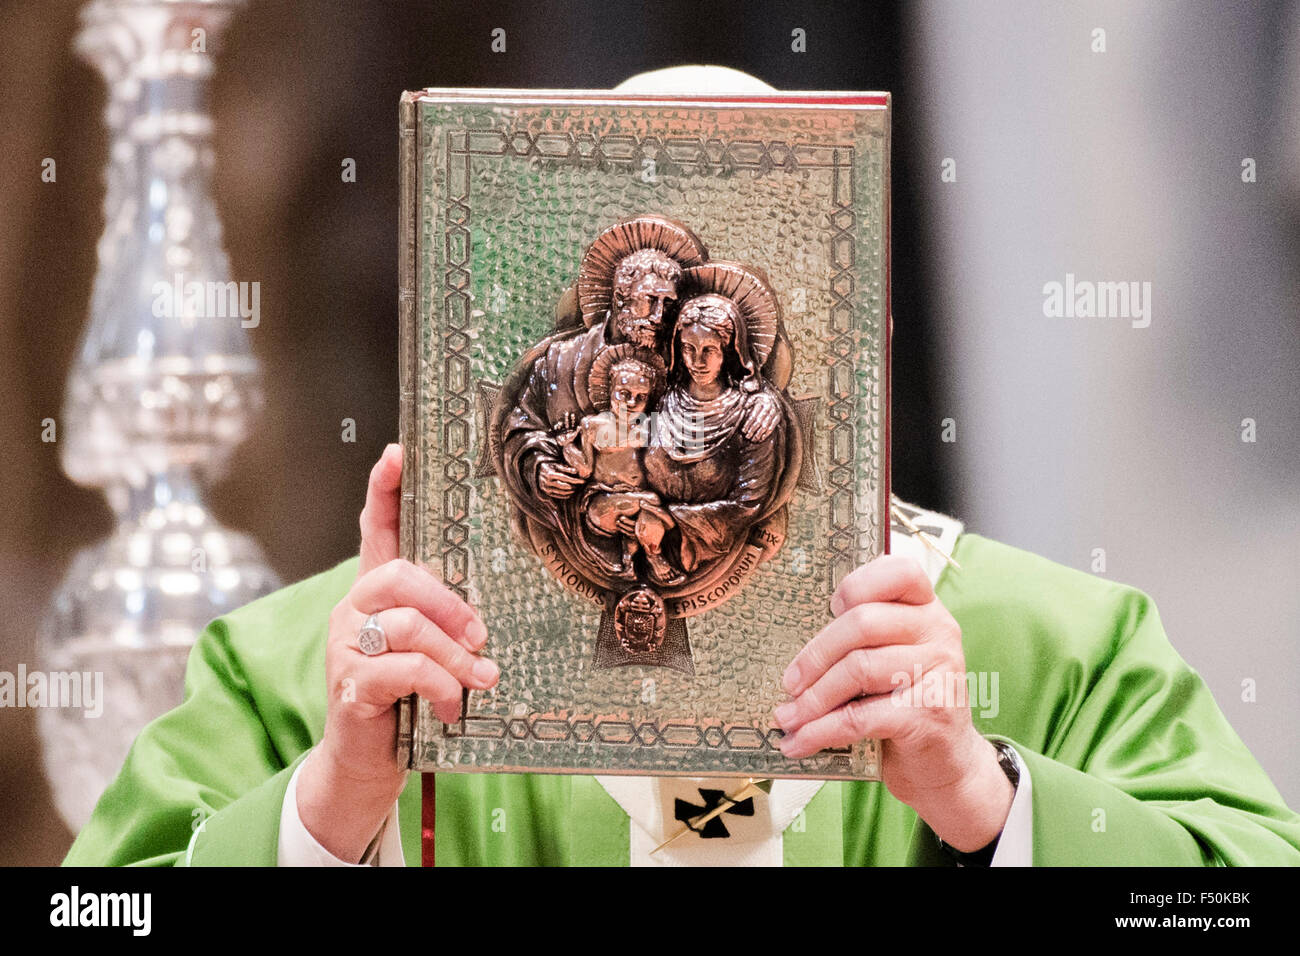 Vatican City. 25th Oct, 2015. Pope Francis holds the Book of Gospels as he celebrates a Mass in St. Peter's - Stock Image